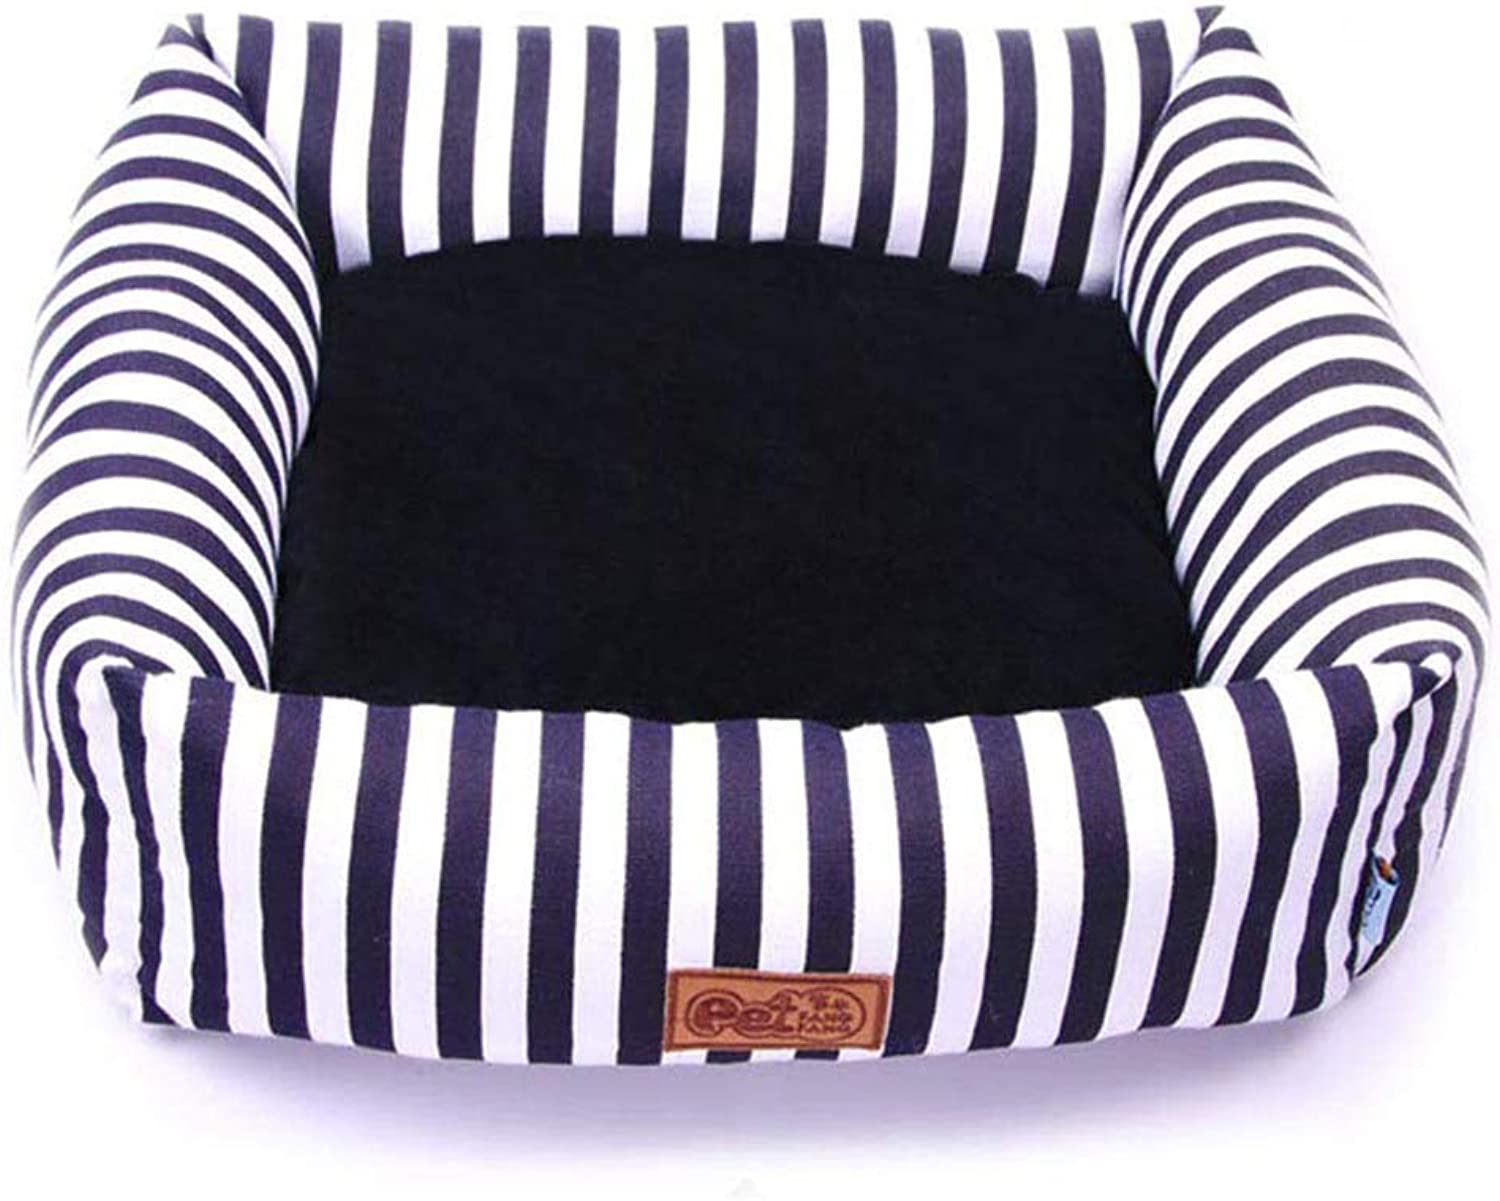 Cat Bed Kennel Soft Dog Mats Puppy Dog Bed Pet House Cozy Nest Kitten Pad Thick Warm Pet Cushion Autumn Winter